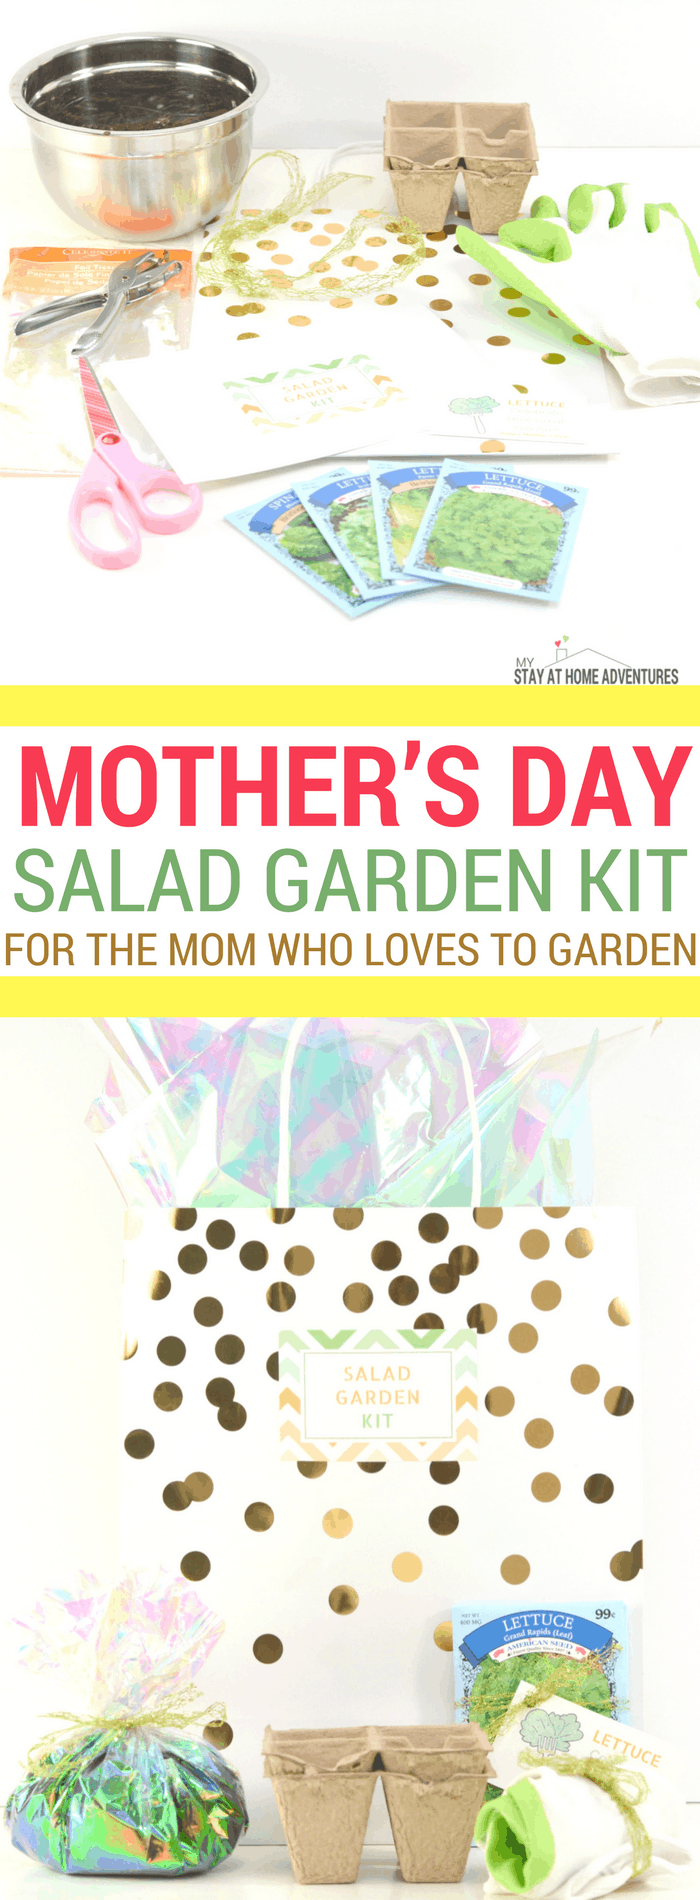 Looking for a cute and affordable Mother's Day DIY gift? Check out this super cute Mother's Day Salad Garden Kit for the mom who loves gardening and of course salad! Comes with free printable cards and all you need can be bought at your local dollar store! #Mothersday #giftideas #Garden #Seeds #DIY #gifts #Gardening #Mom